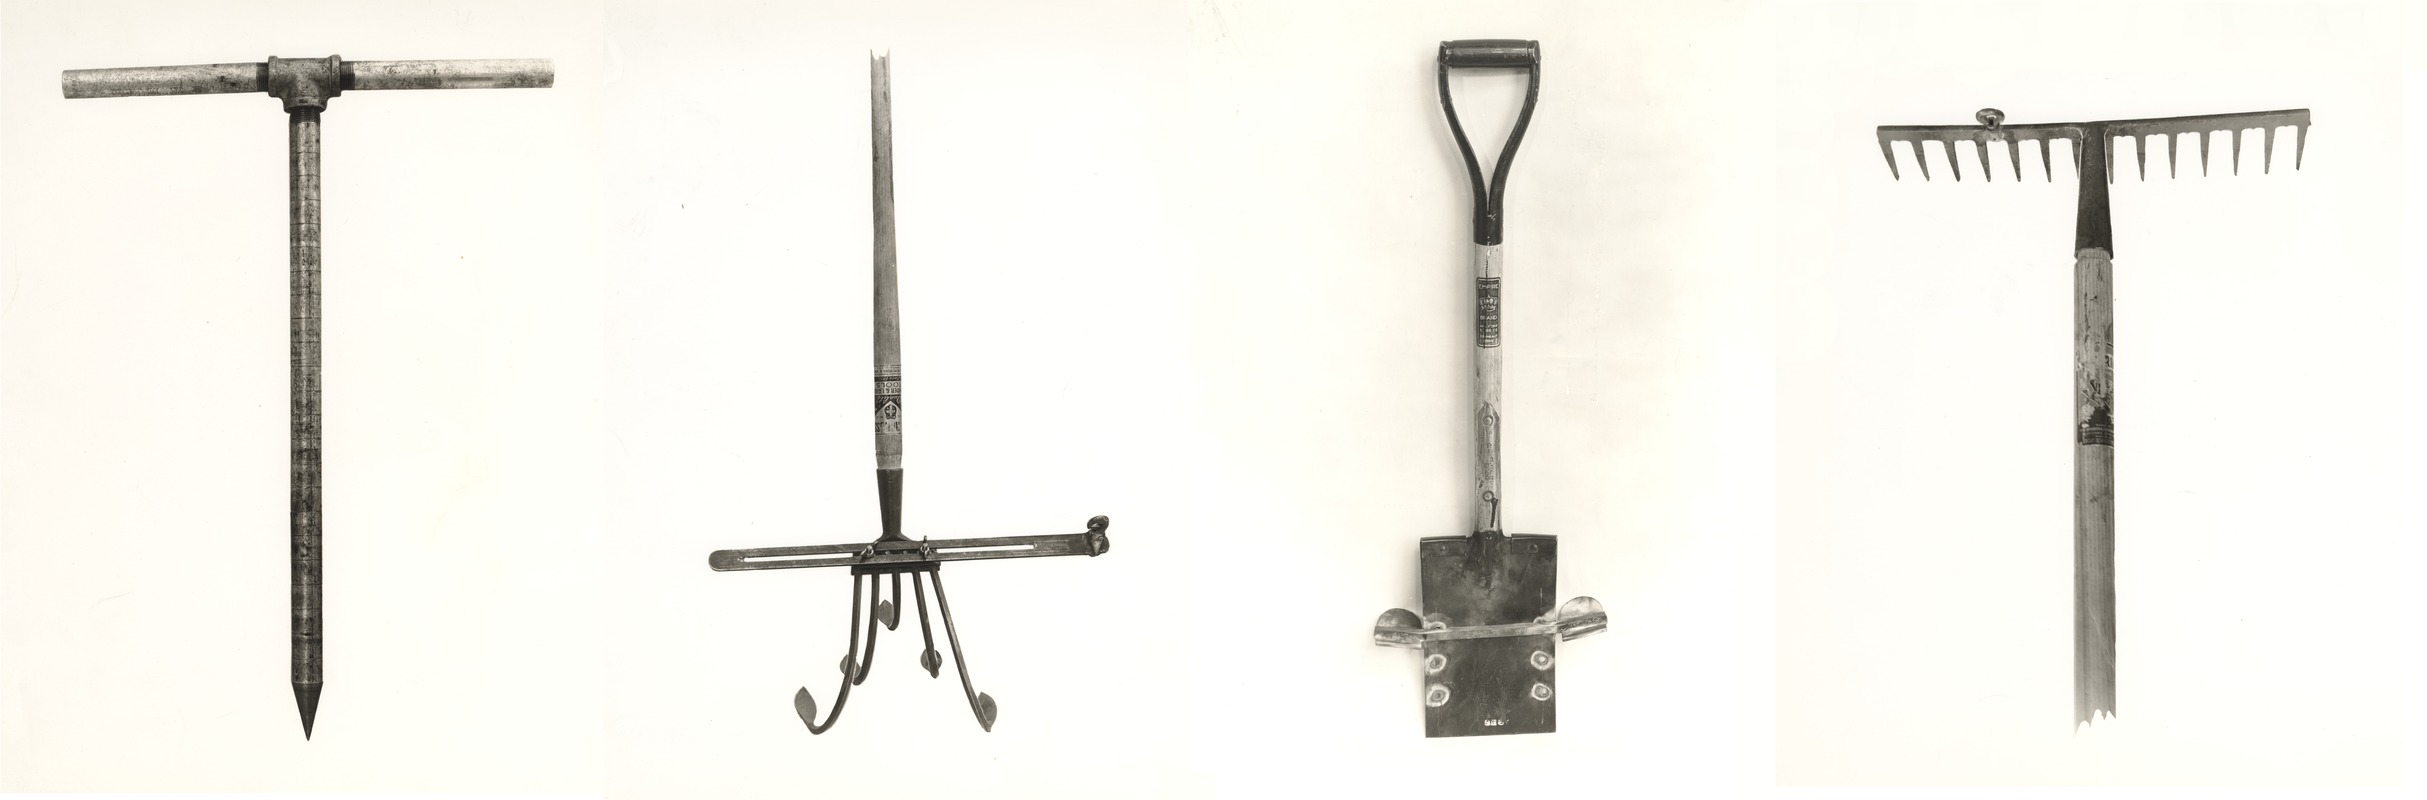 Adapted Agricultural Tools, Perkins School for the Blind